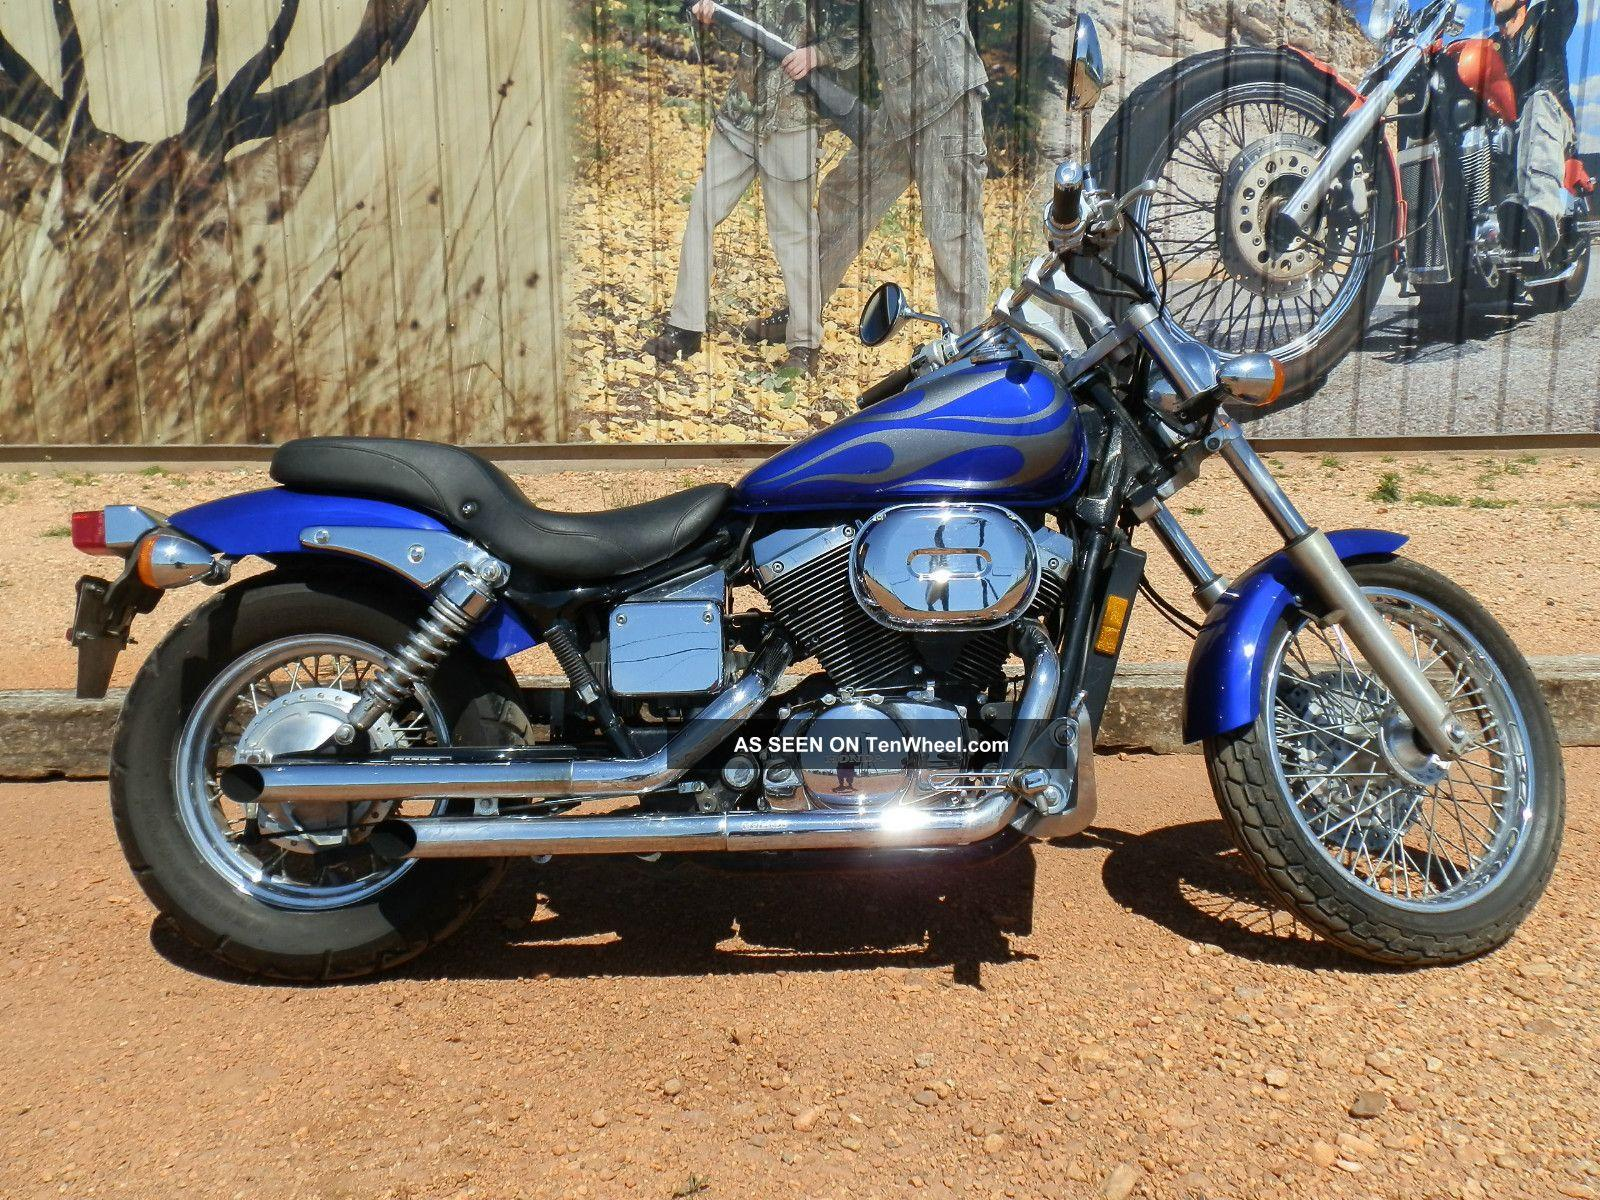 2006 Honda Shadow ® Spirit 750 Reviews, Prices, and Specs